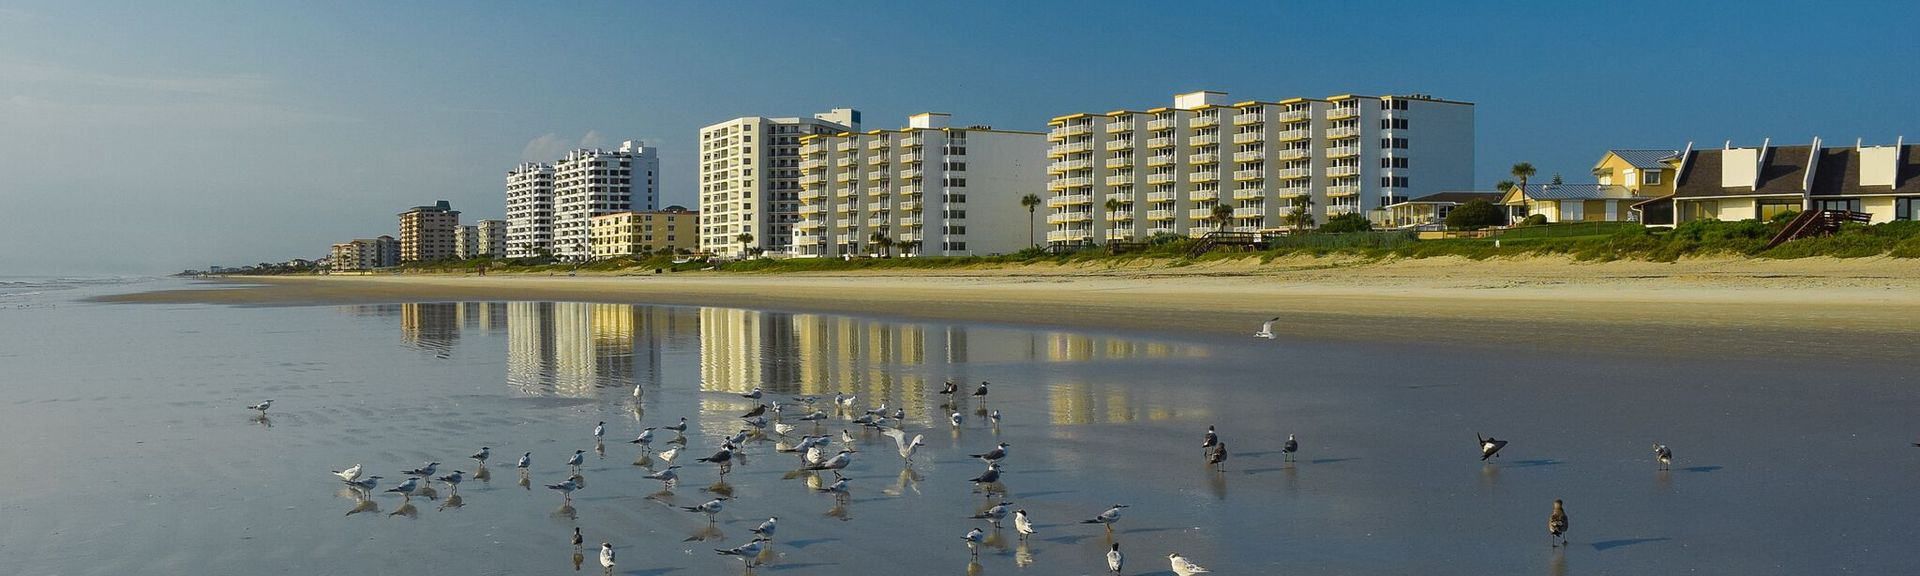 New Smyrna Beach, Florida, Estados Unidos